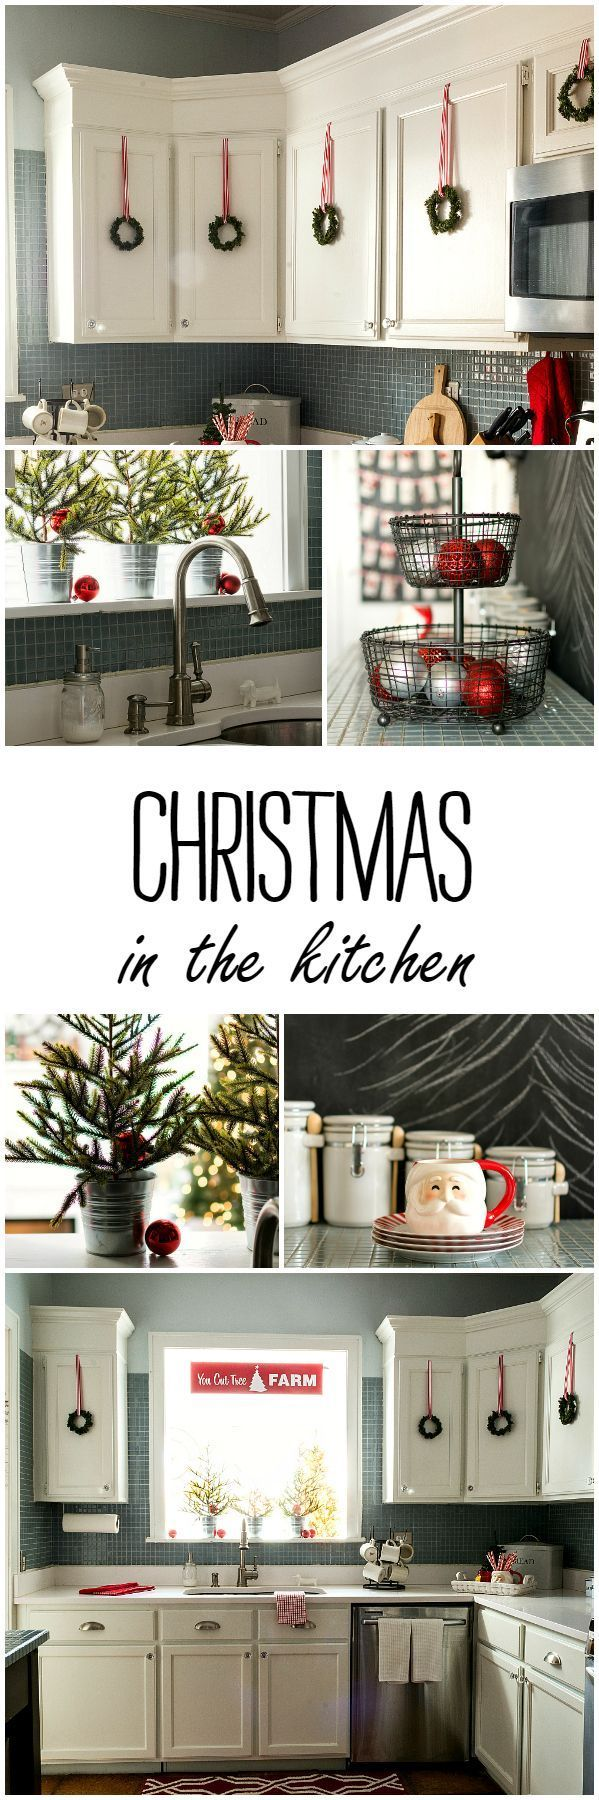 Holiday Decorating Ideas Pinterest Part - 26: Christmas Kitchen Decorating Ideas